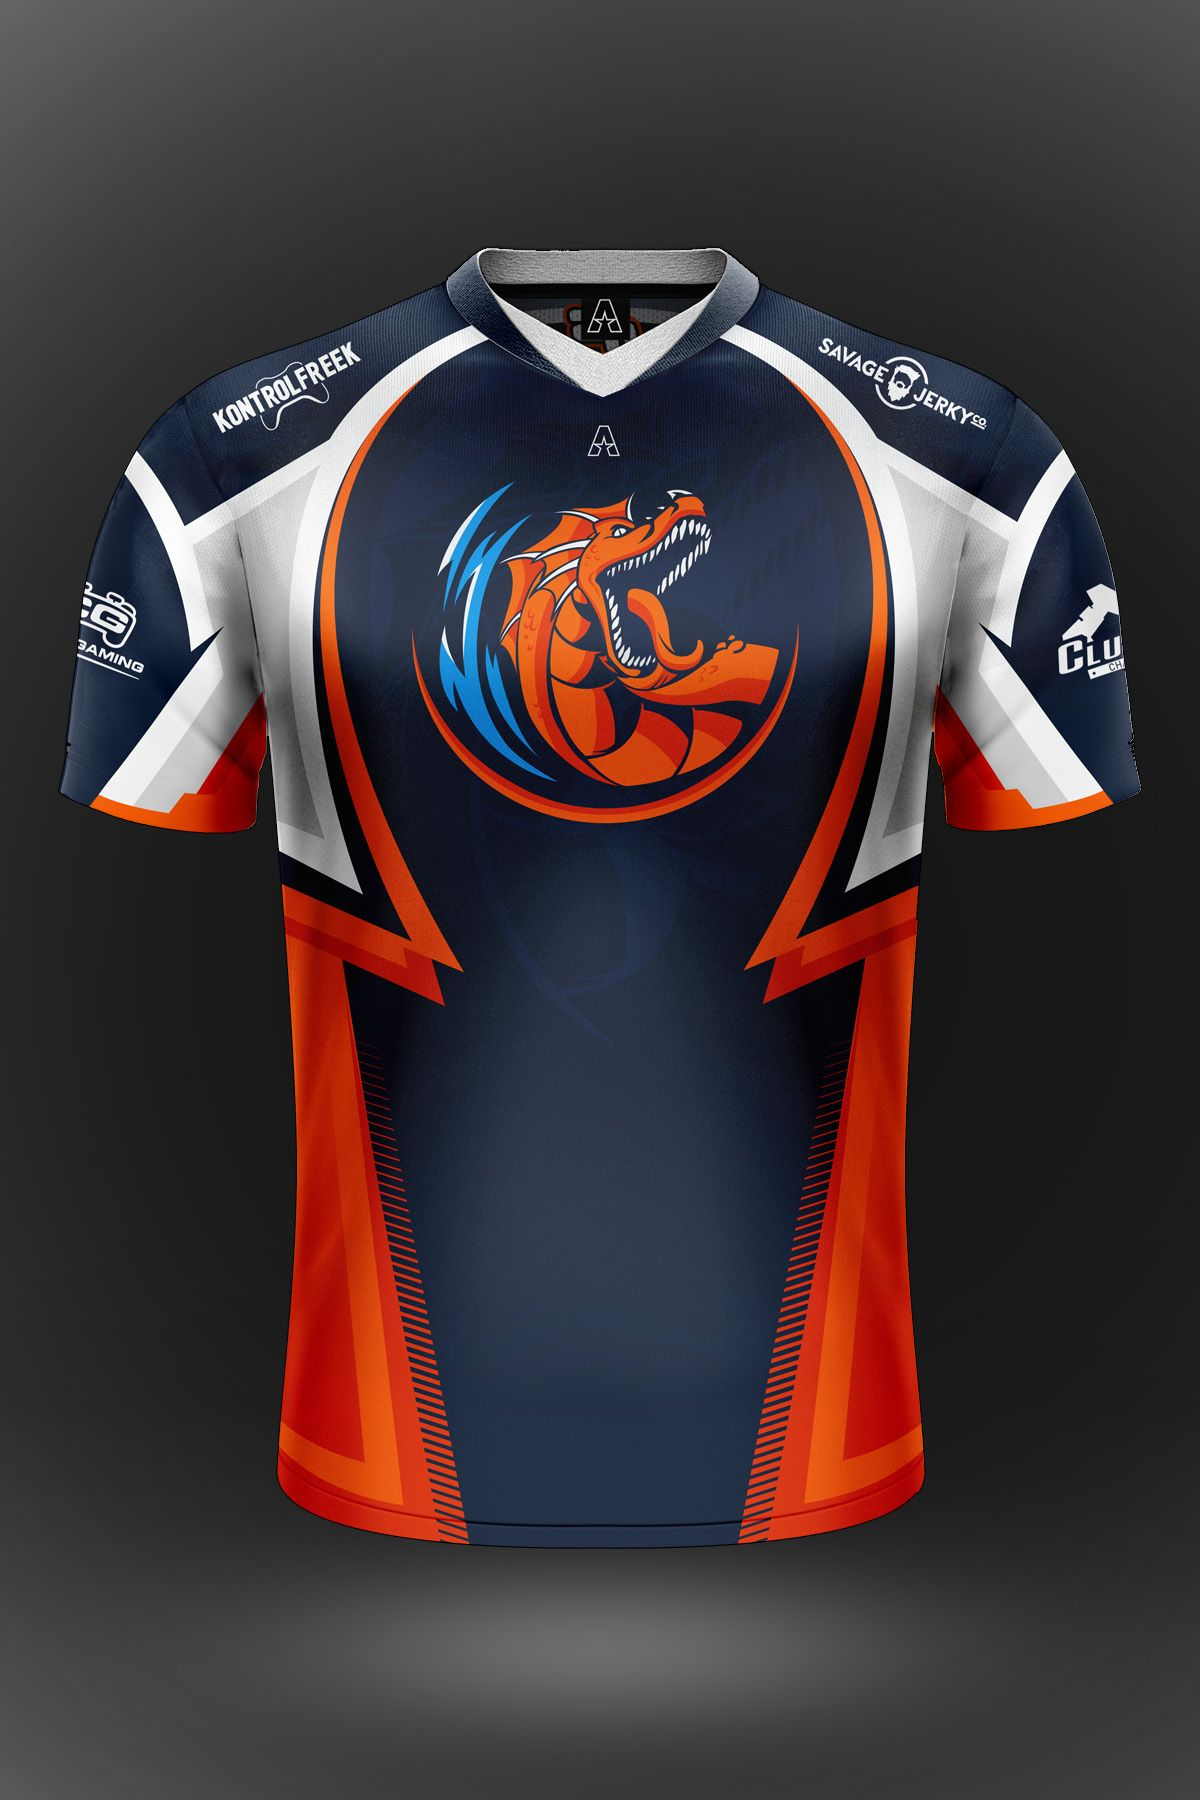 Onslaught Fierce Jersey Akquire Clothing Co Cycling Jersey Design Jersey Design Sport Shirt Design